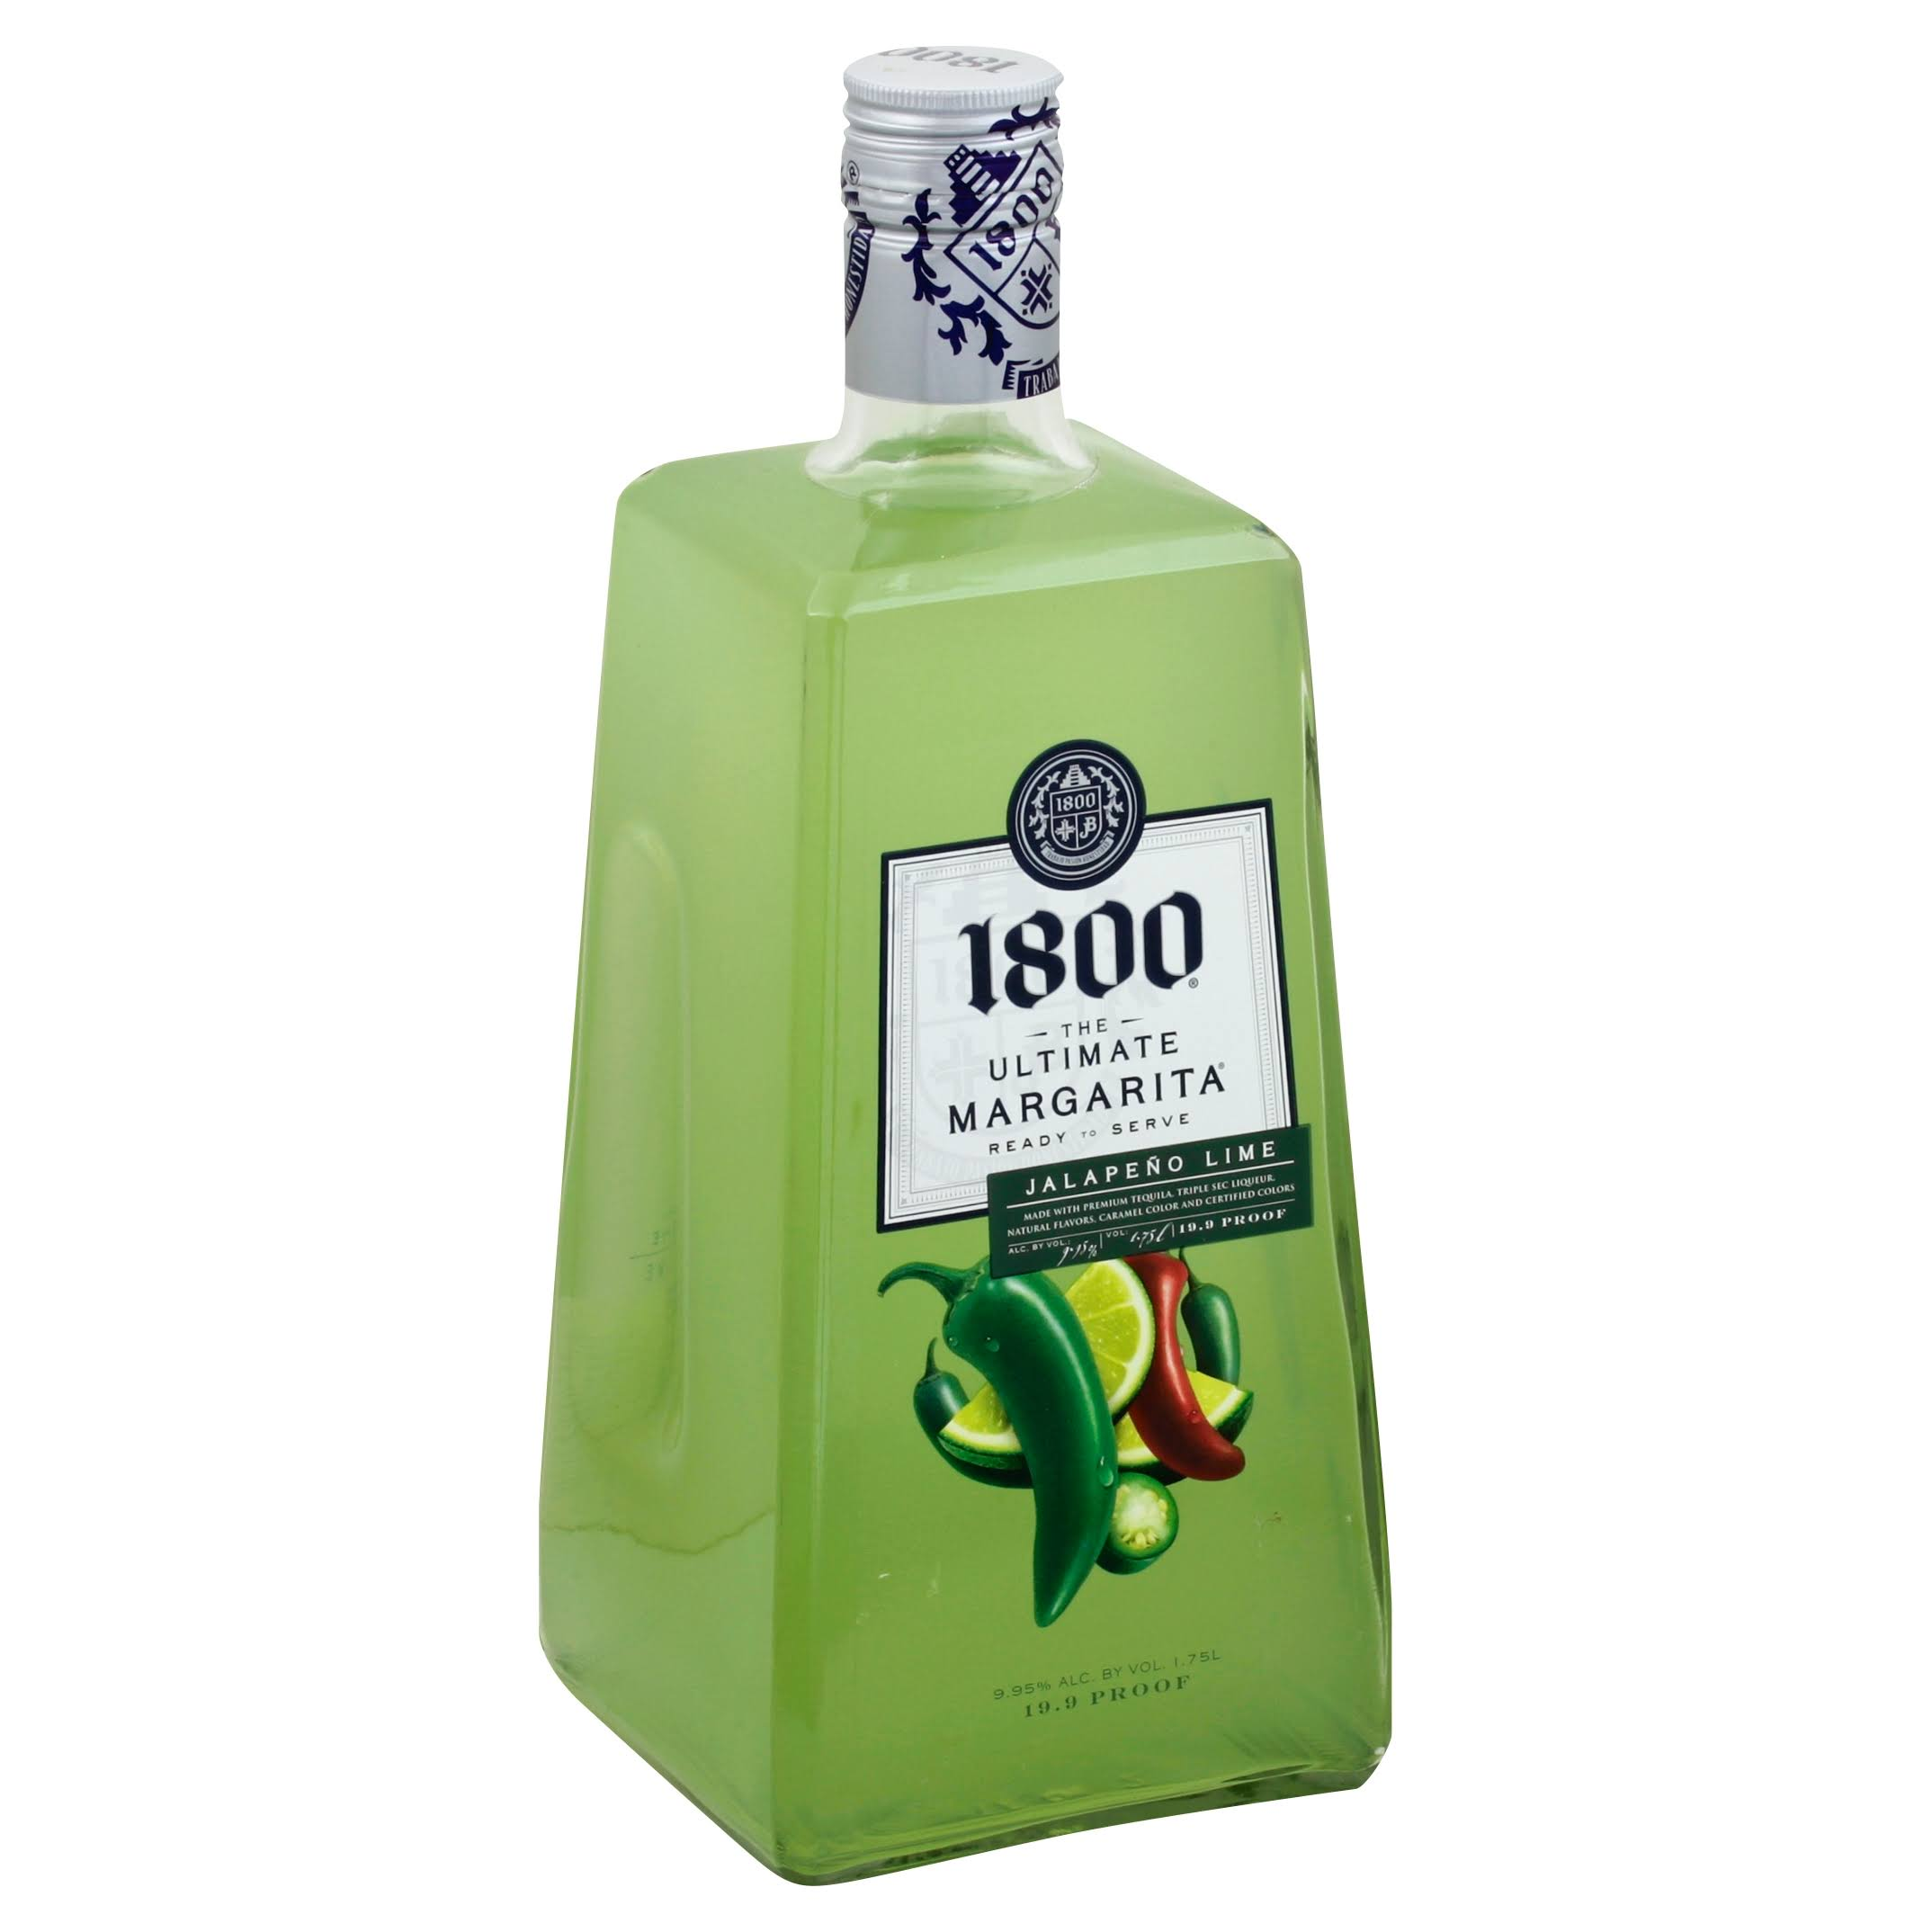 1800 Margarita, The Ultimate, Jalapeno Lime - 1.75 l